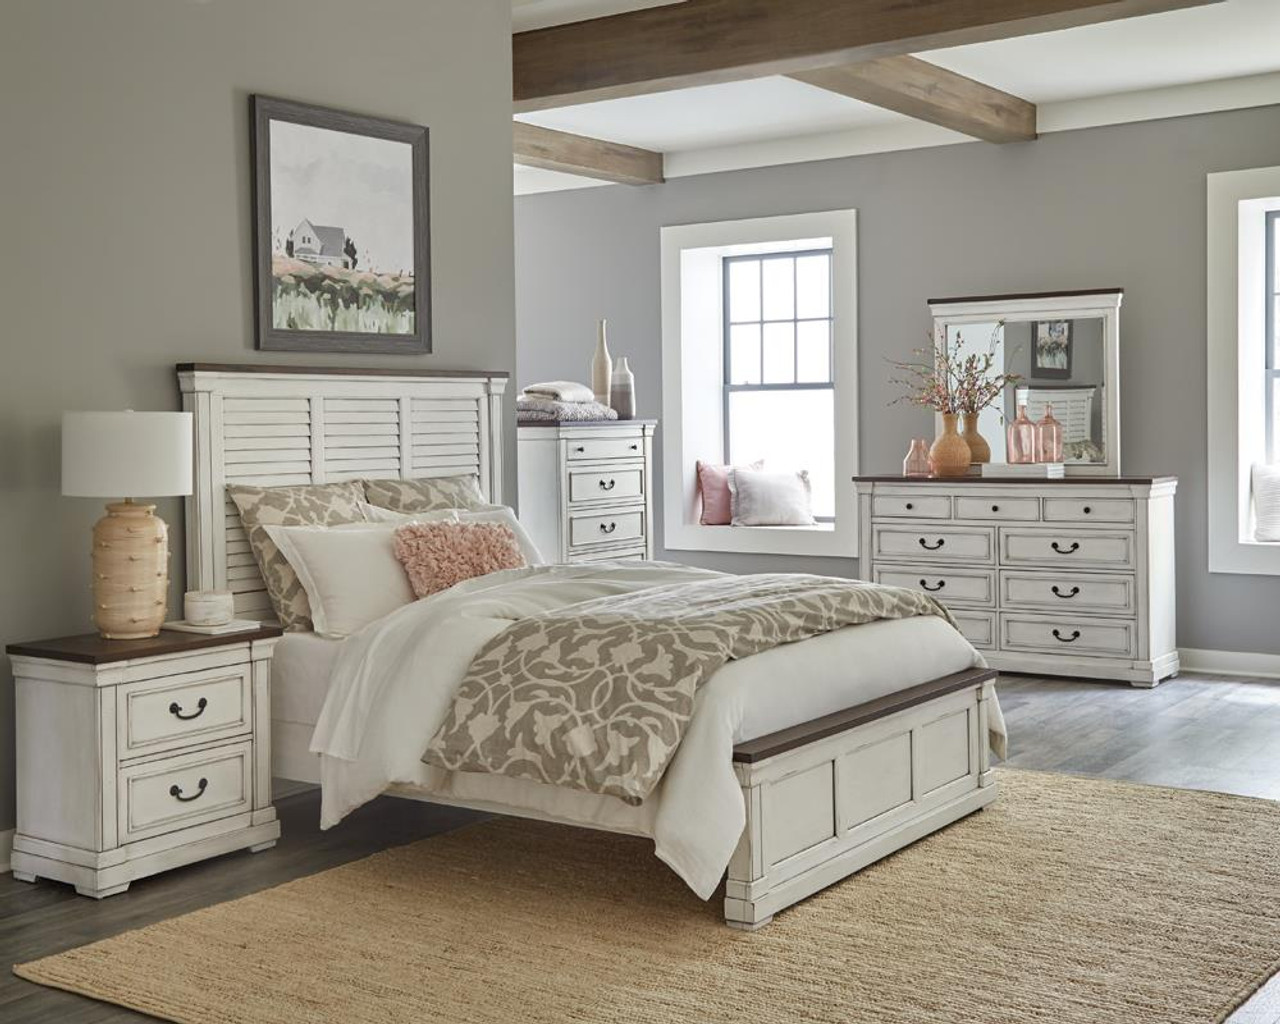 The Hillcrest 5 Piece Queen Panel Bedroom Set White And Dark Rum Available At Logan Furniture Serving Dorchester Ma